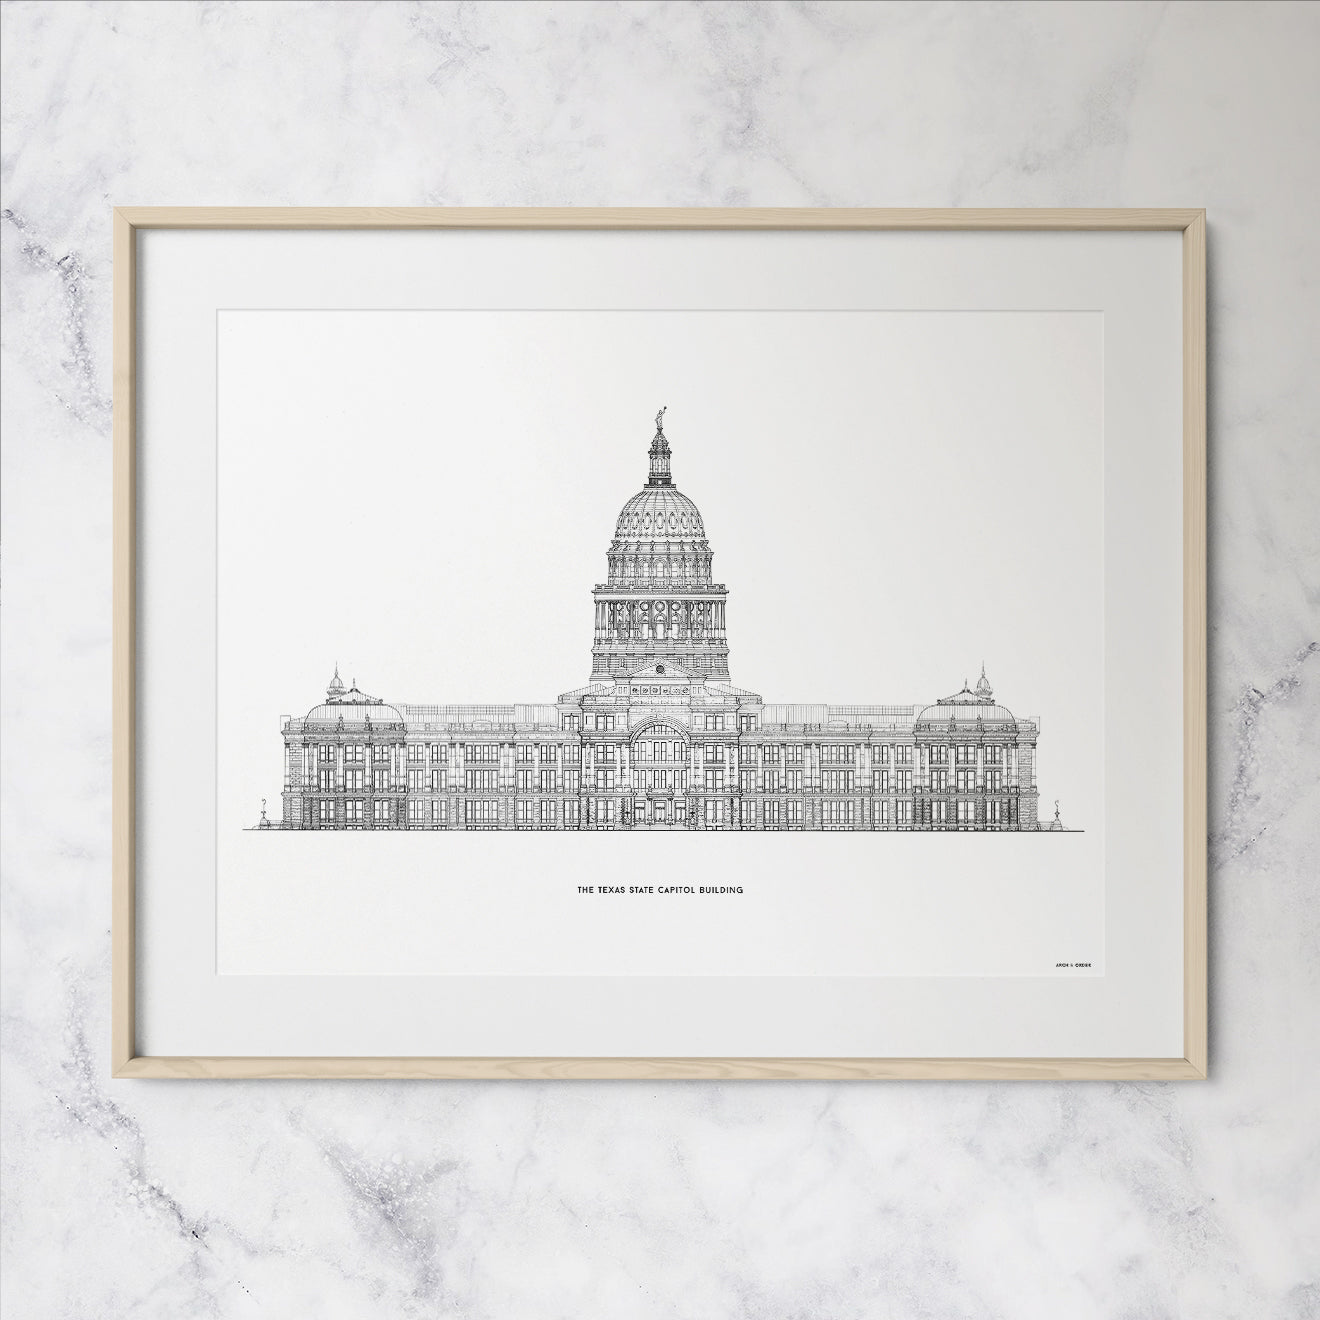 Announcing the State Capitol Building Collection